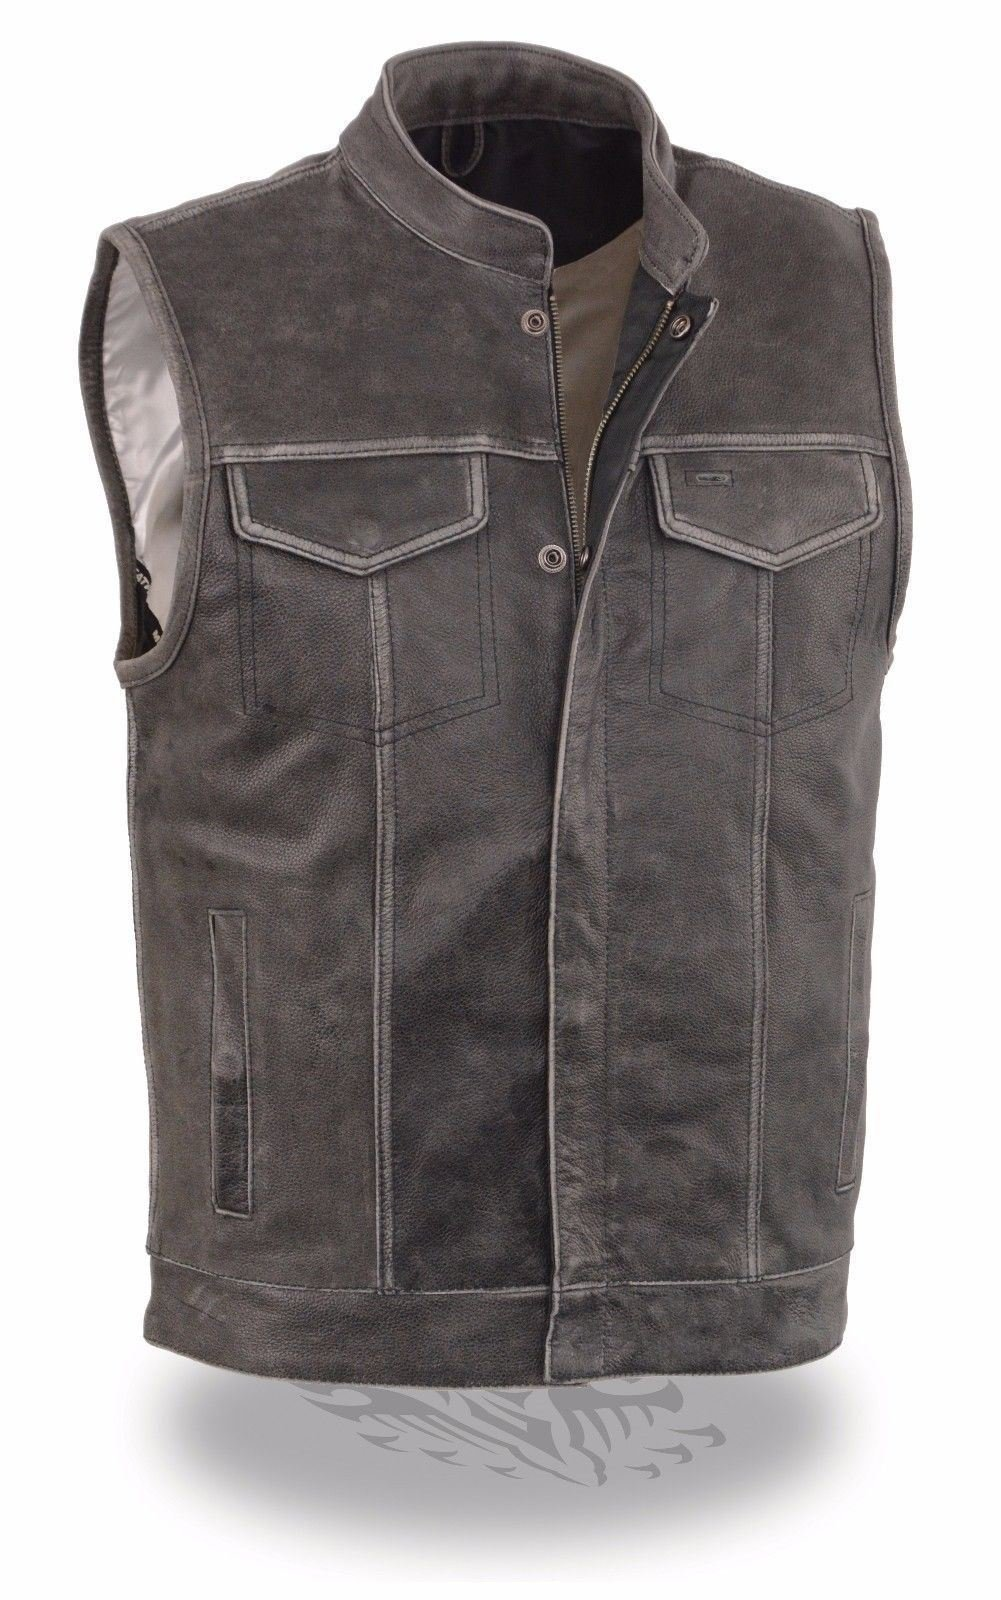 MEN'S DISTRESSED GREY MOTORCYCLE SON OF ANARCHY STYLE LEATHER VEST W/GUN POCKETS (L Regular)